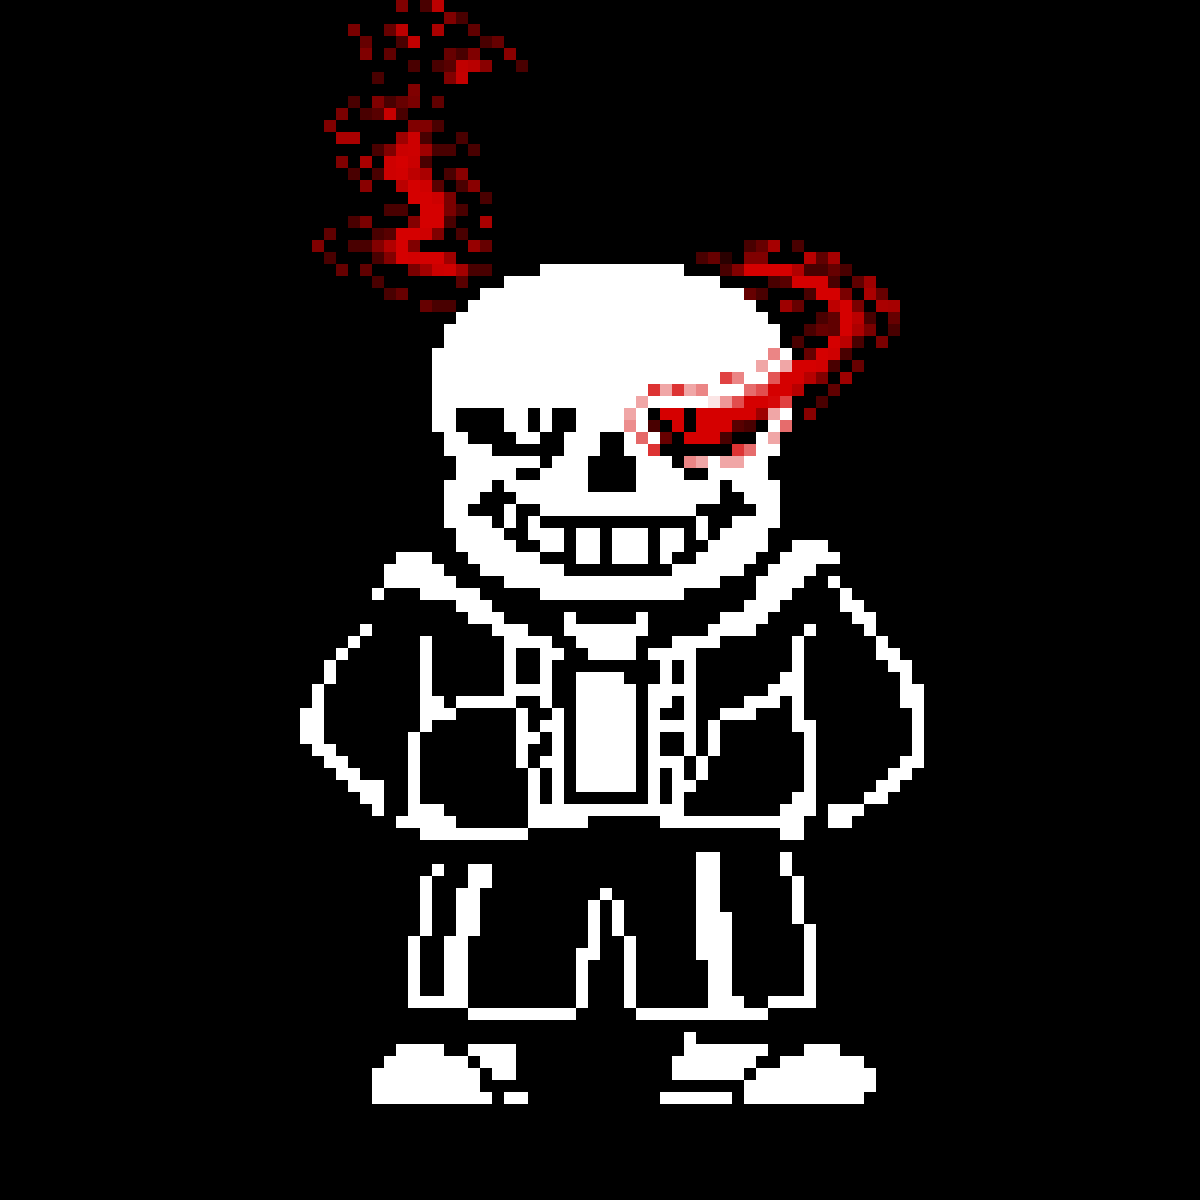 Original Sans Sprite By Toby Fox Edited By Me Here Is The Theme Https Www Youtube Com Watch V Asbyf2io9tw Color Palette Challenge Pixel Drawing Pixel Art